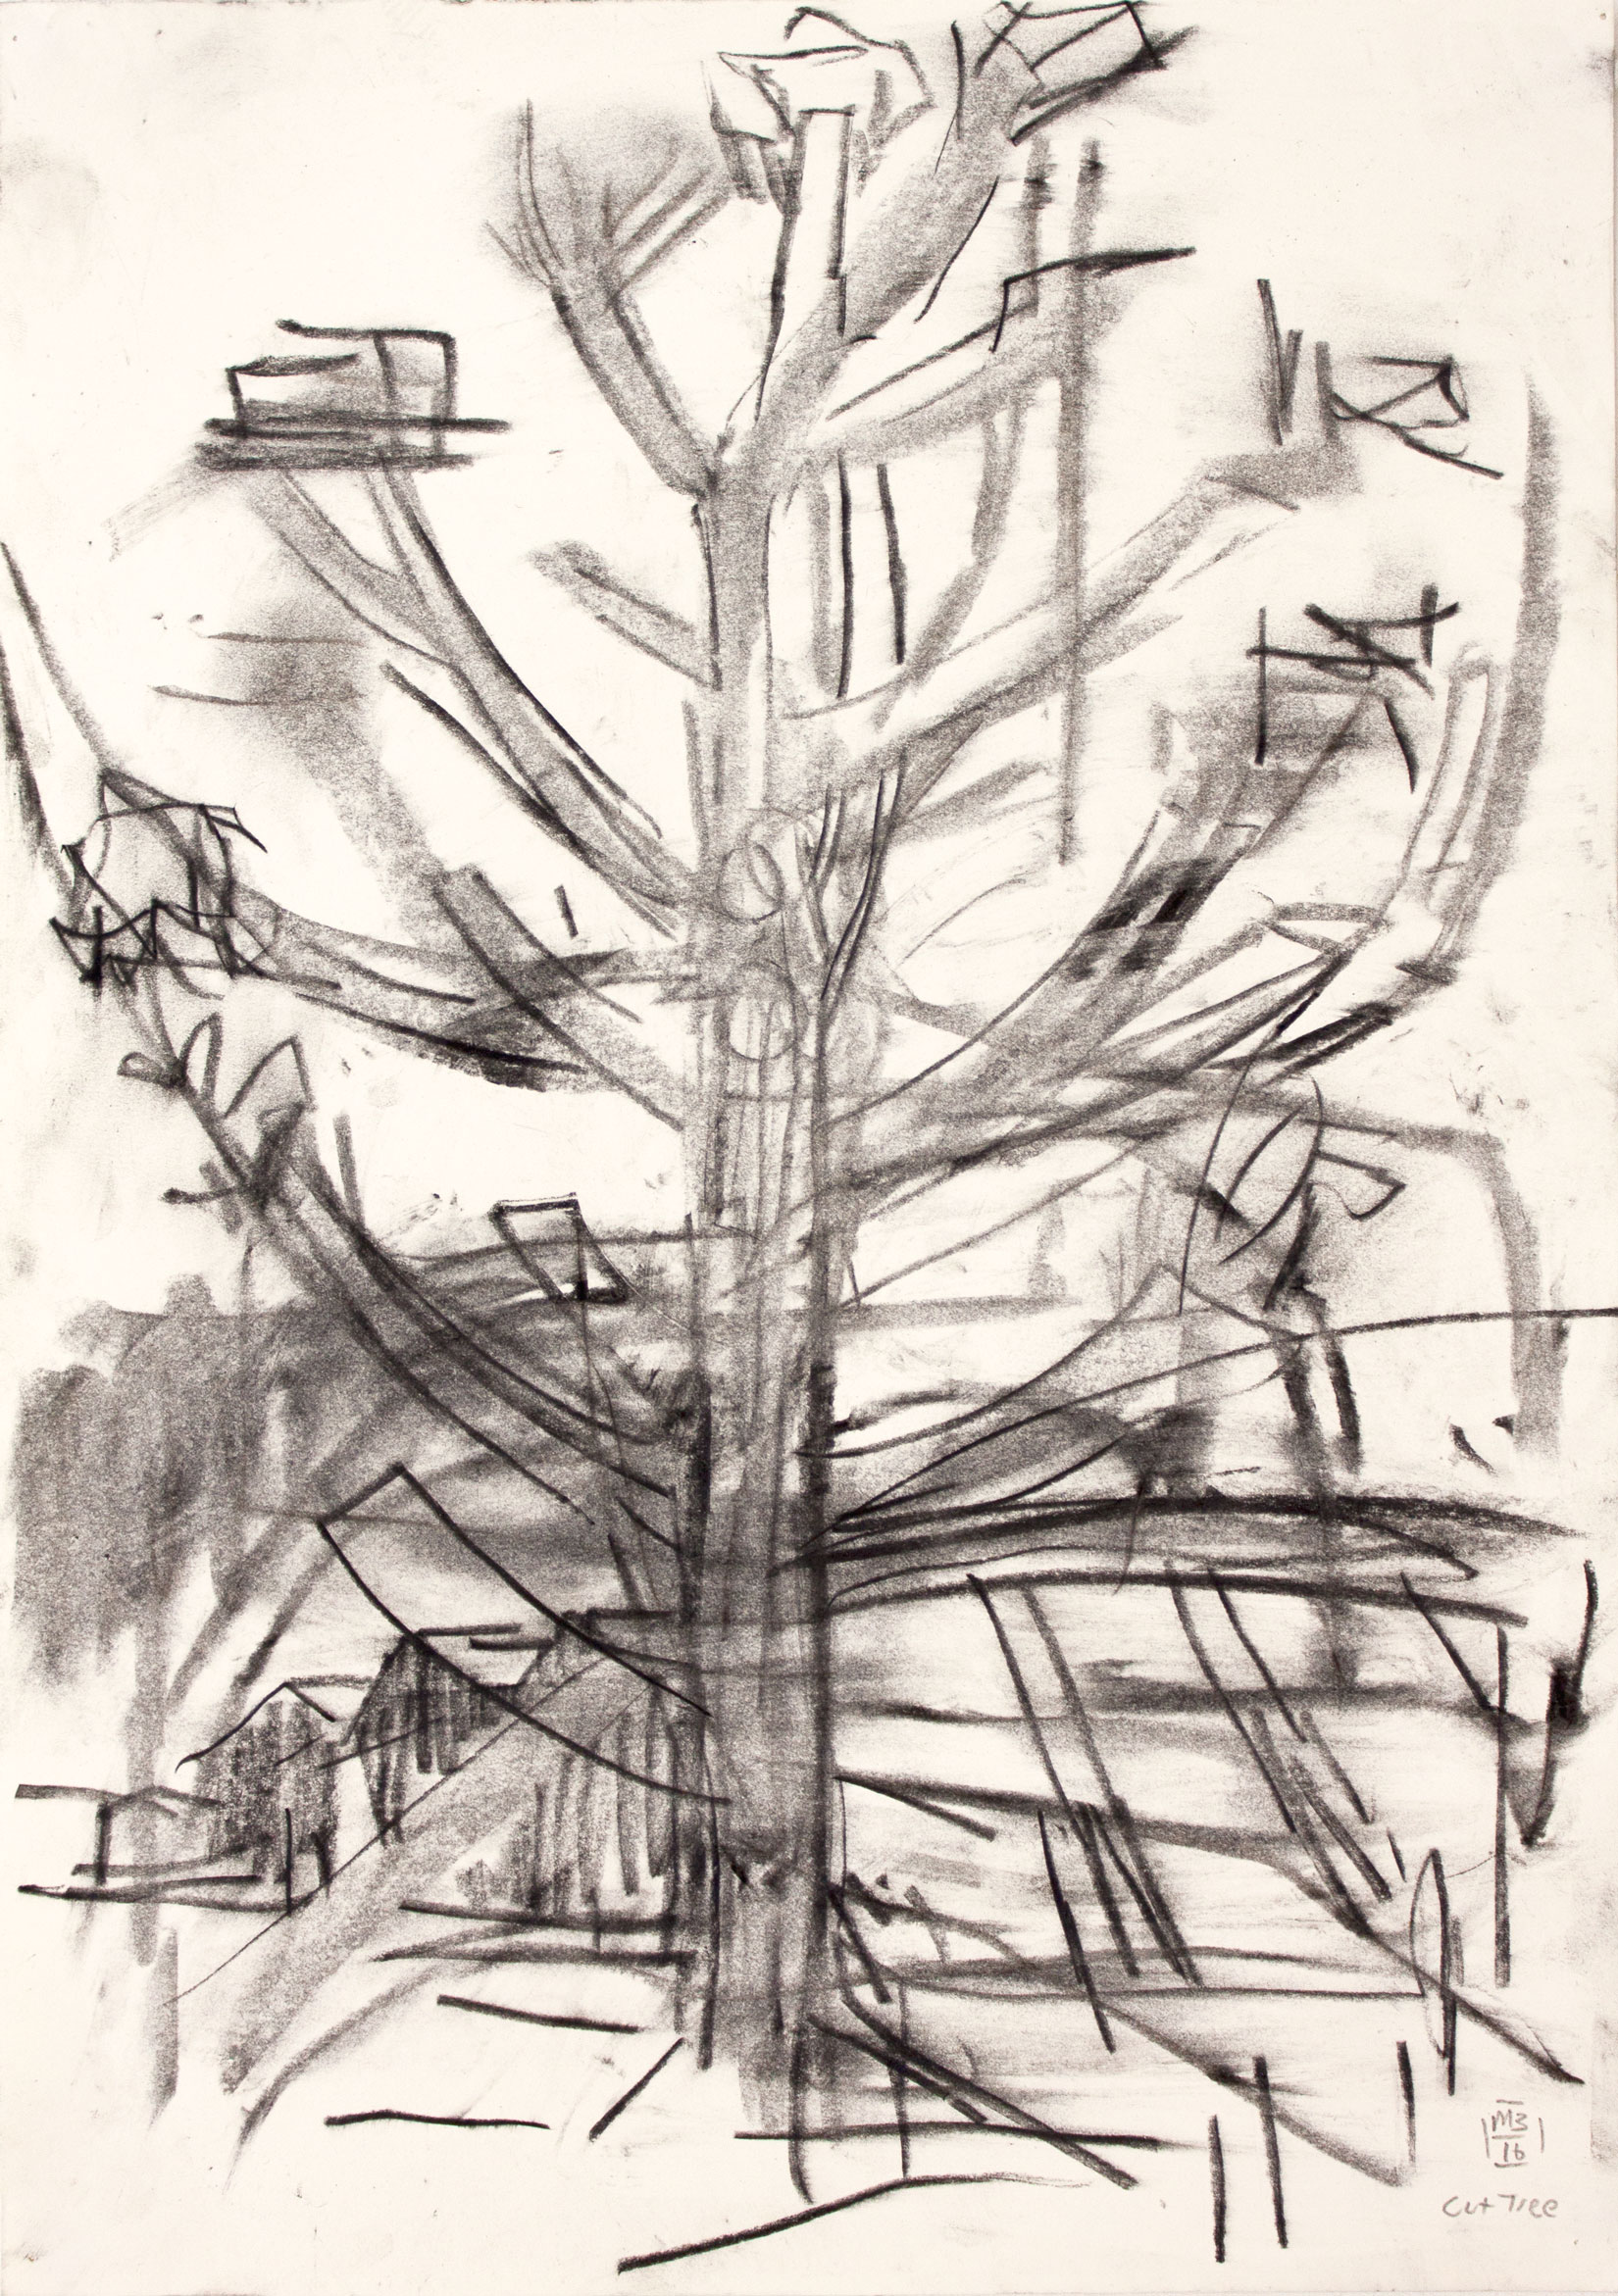 Cut tree (2016) 42 x 29.5 cm (16.5 x 11.6 in.) Charcoal on paper Michael Markwick